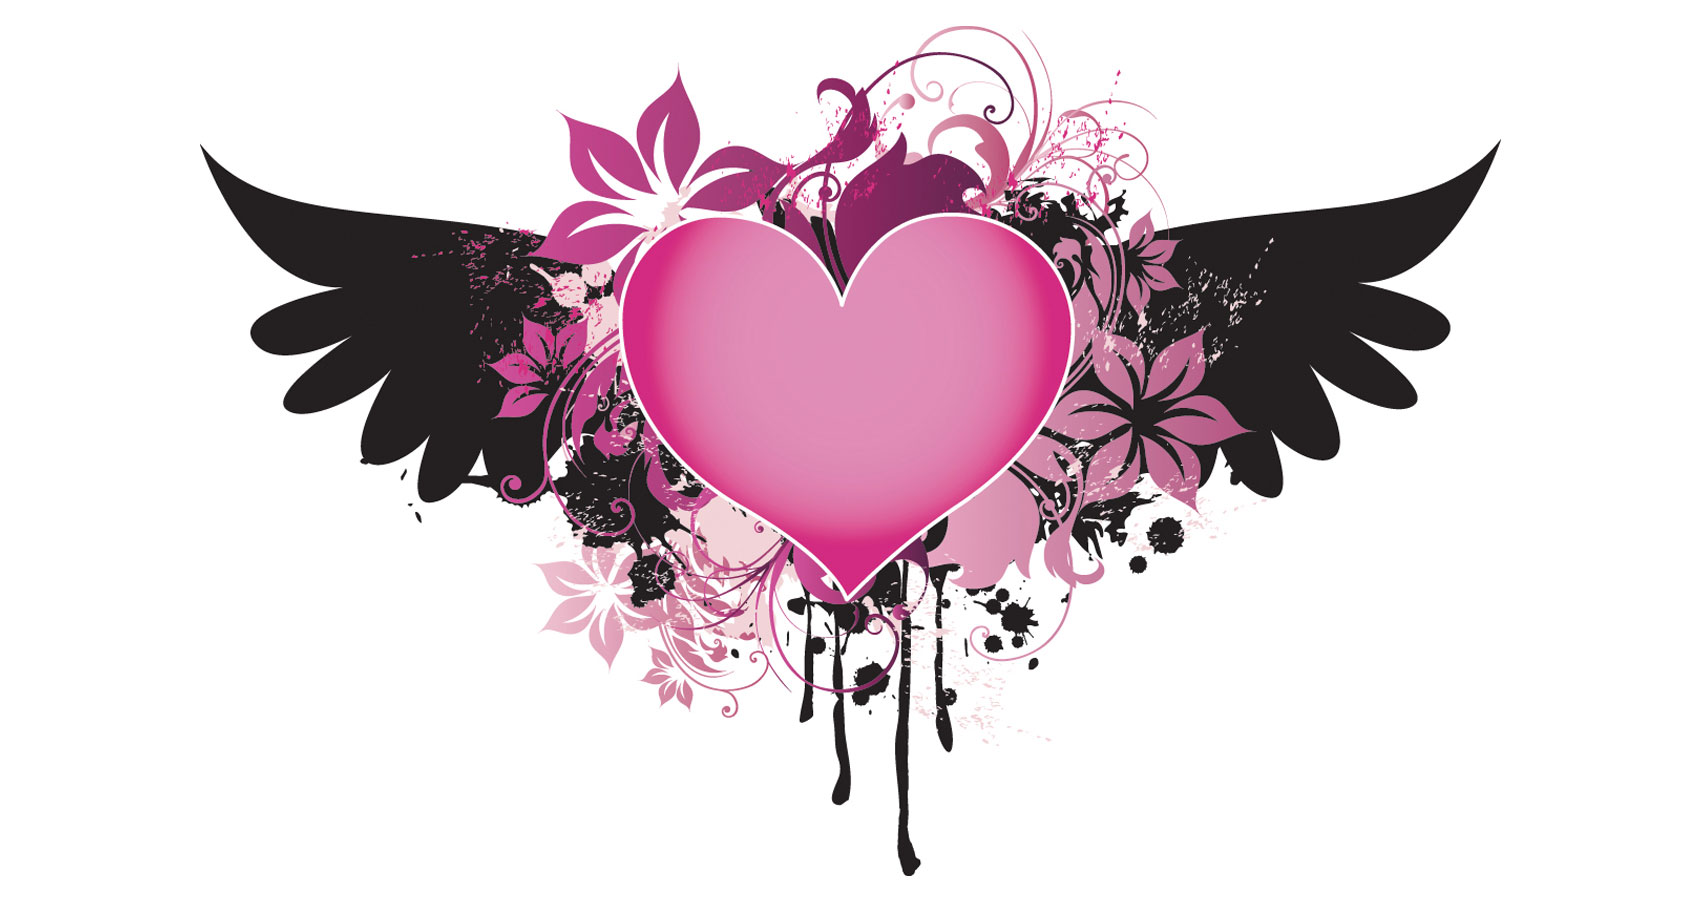 Heart with Wings written by Sagarika at Spillwords.com